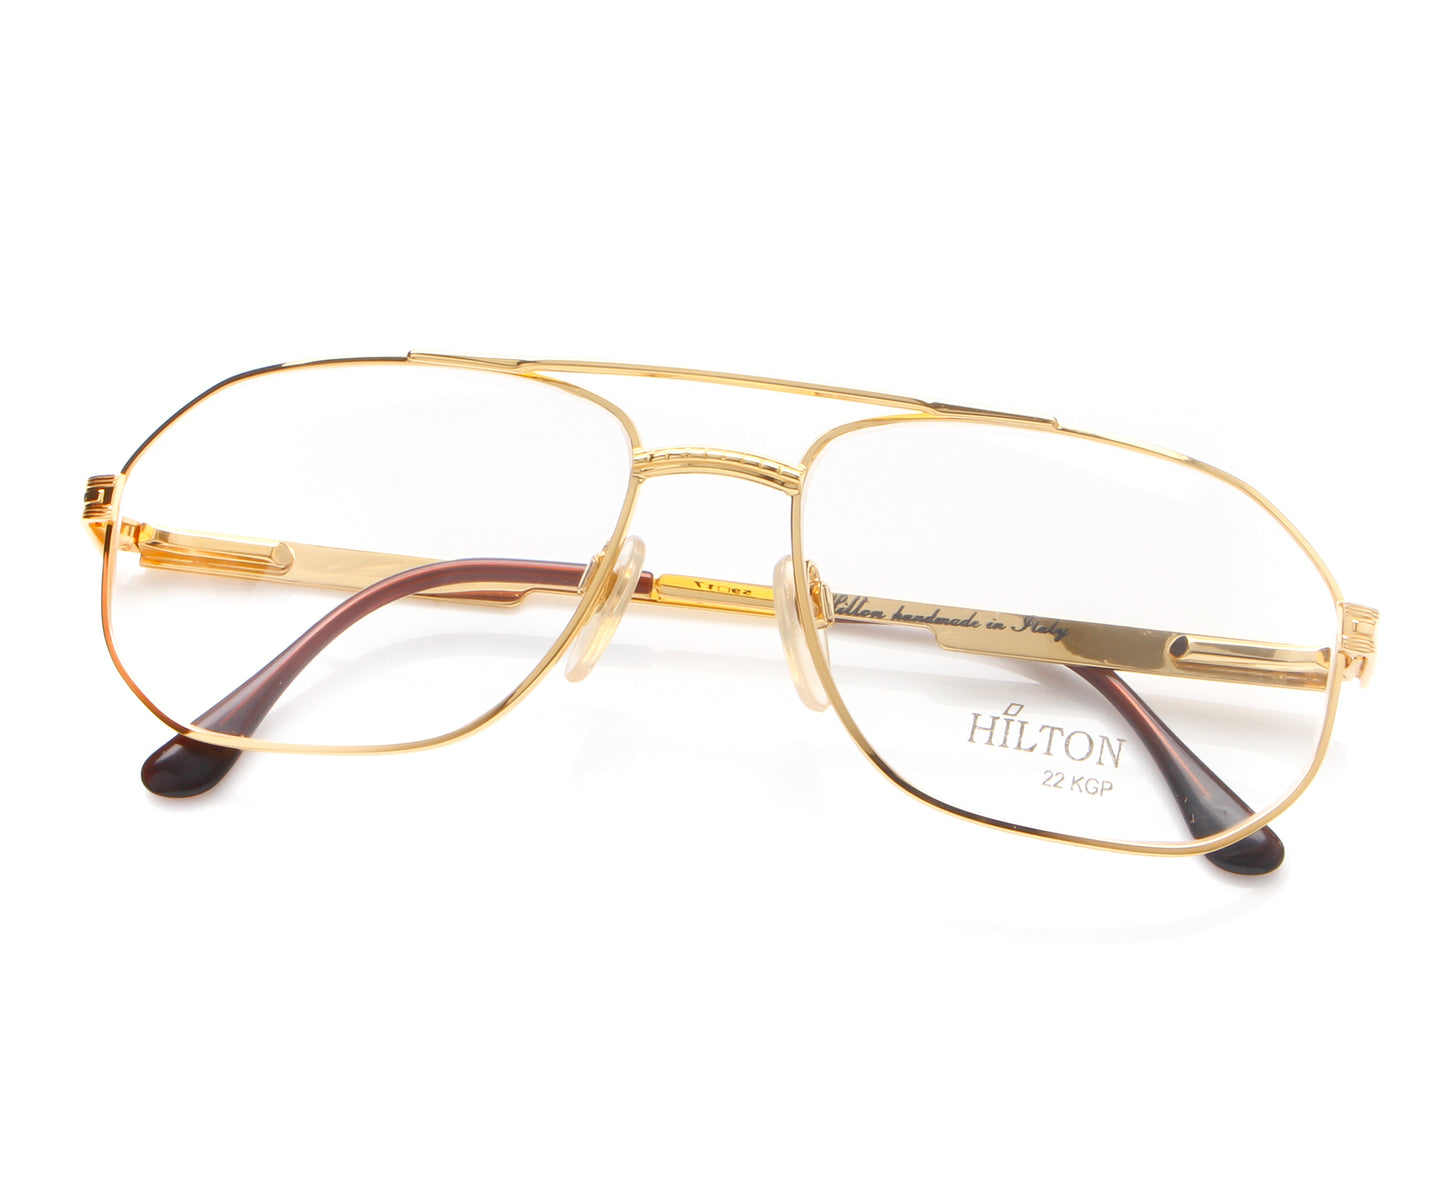 Vintage Hilton Manhattan 206 01 Thumb, Hilton , glasses frames, eyeglasses online, eyeglass frames, mens glasses, womens glasses, buy glasses online, designer eyeglasses, vintage sunglasses, retro sunglasses, vintage glasses, sunglass, eyeglass, glasses, lens, vintage frames company, vf